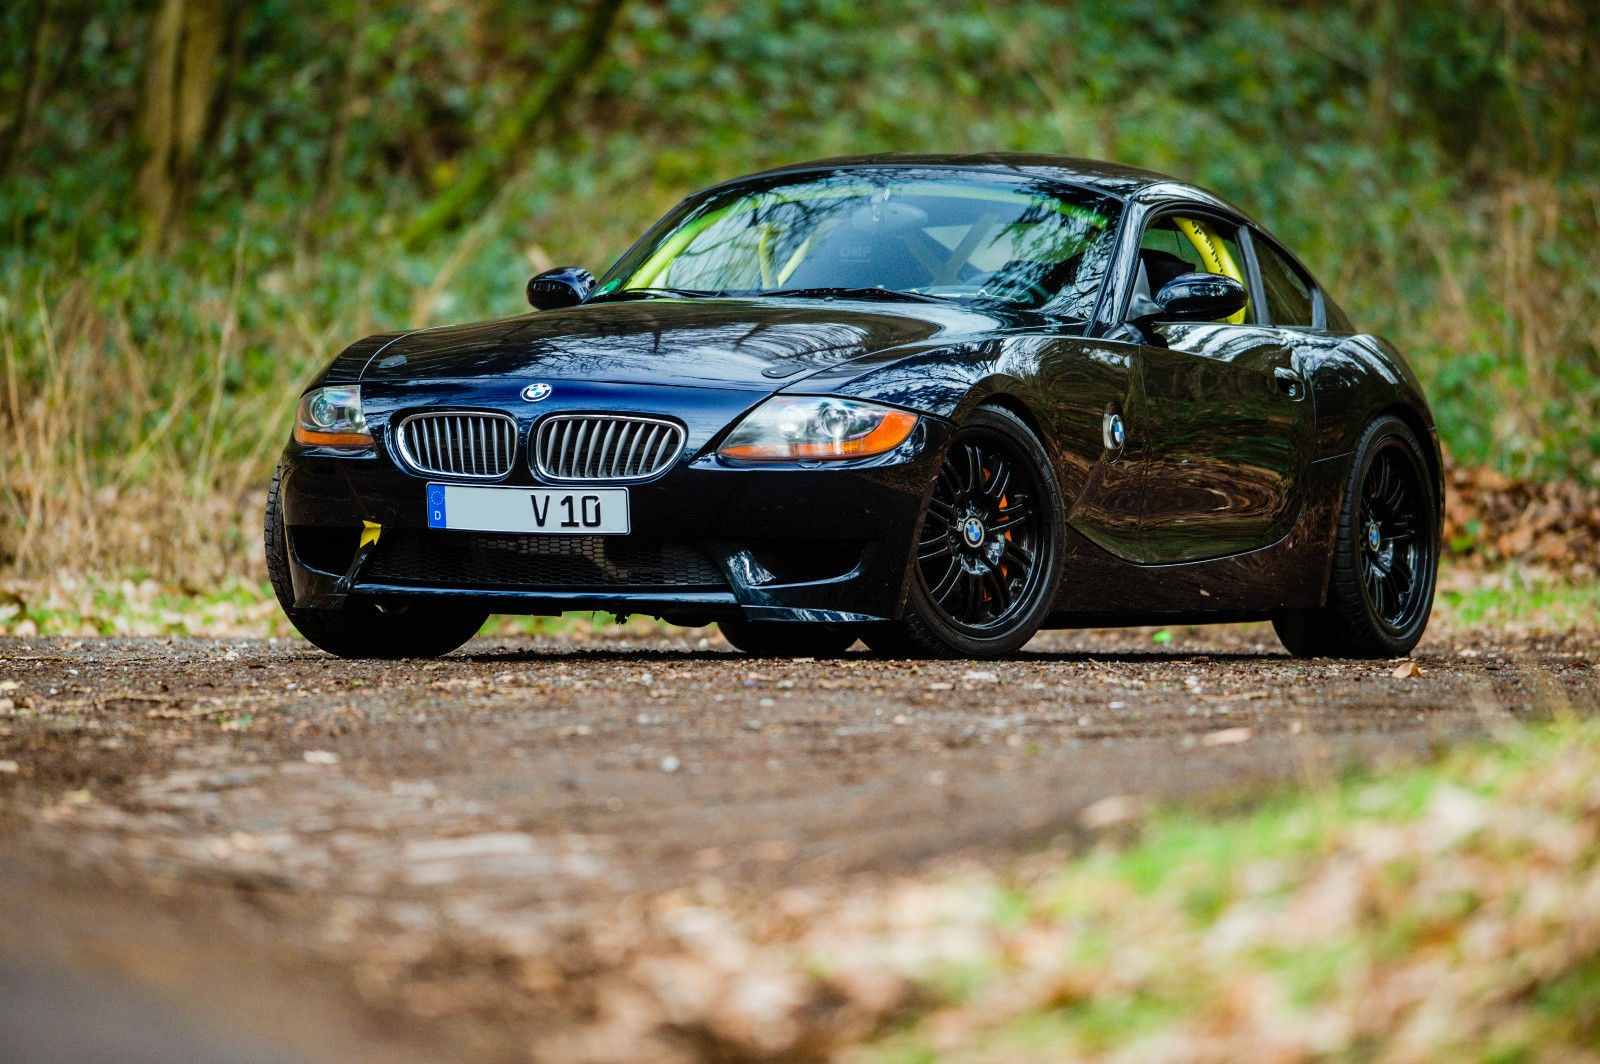 This Bmw Z4 Coupe Is Glued To A Viper V10 Engine